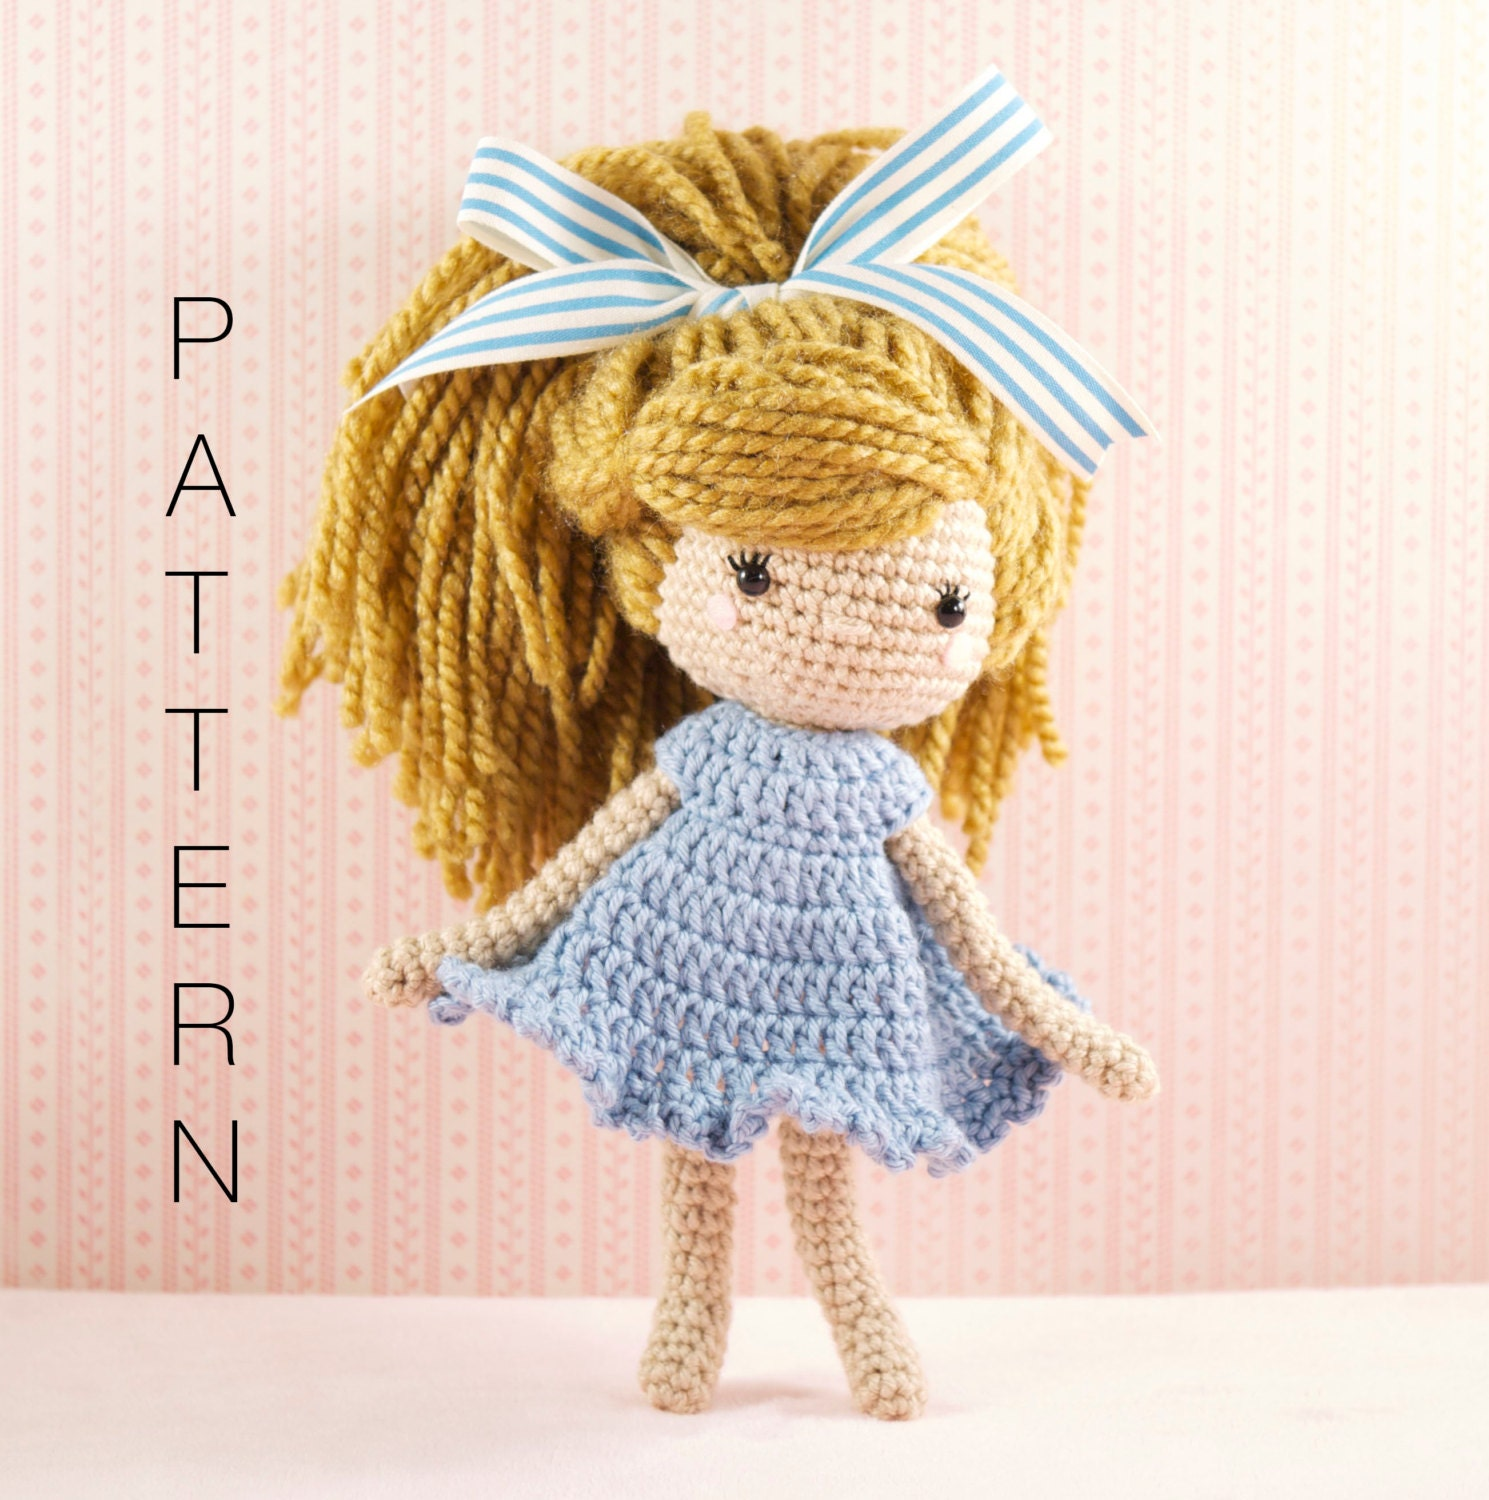 How To Make Amigurumi Dolls For Beginners : Amigurumi crochet doll Emmy-Lou crochet doll PATTERN ONLY